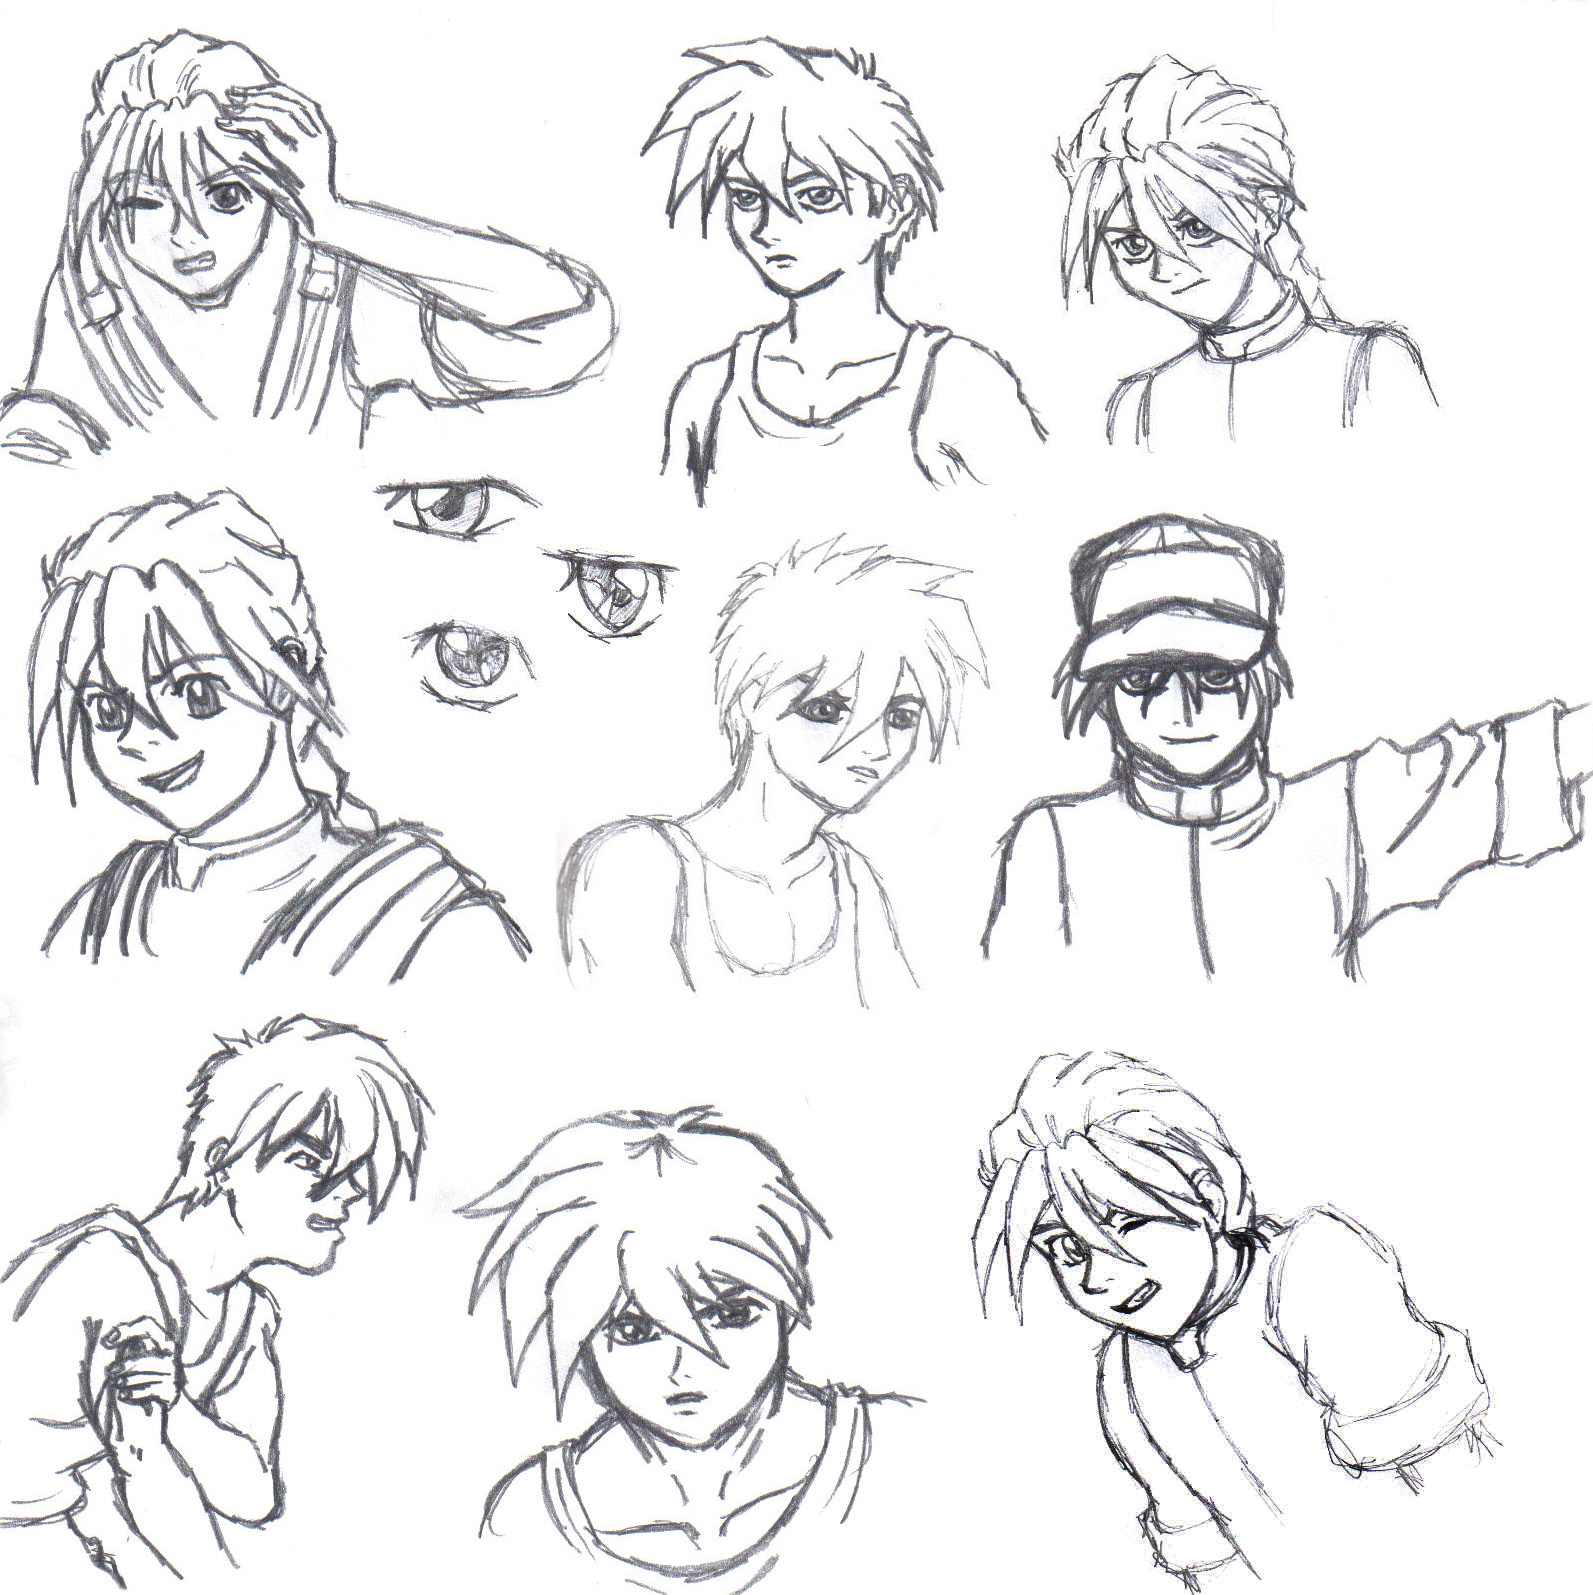 Duo and Heero sketches by Emeraldwolf